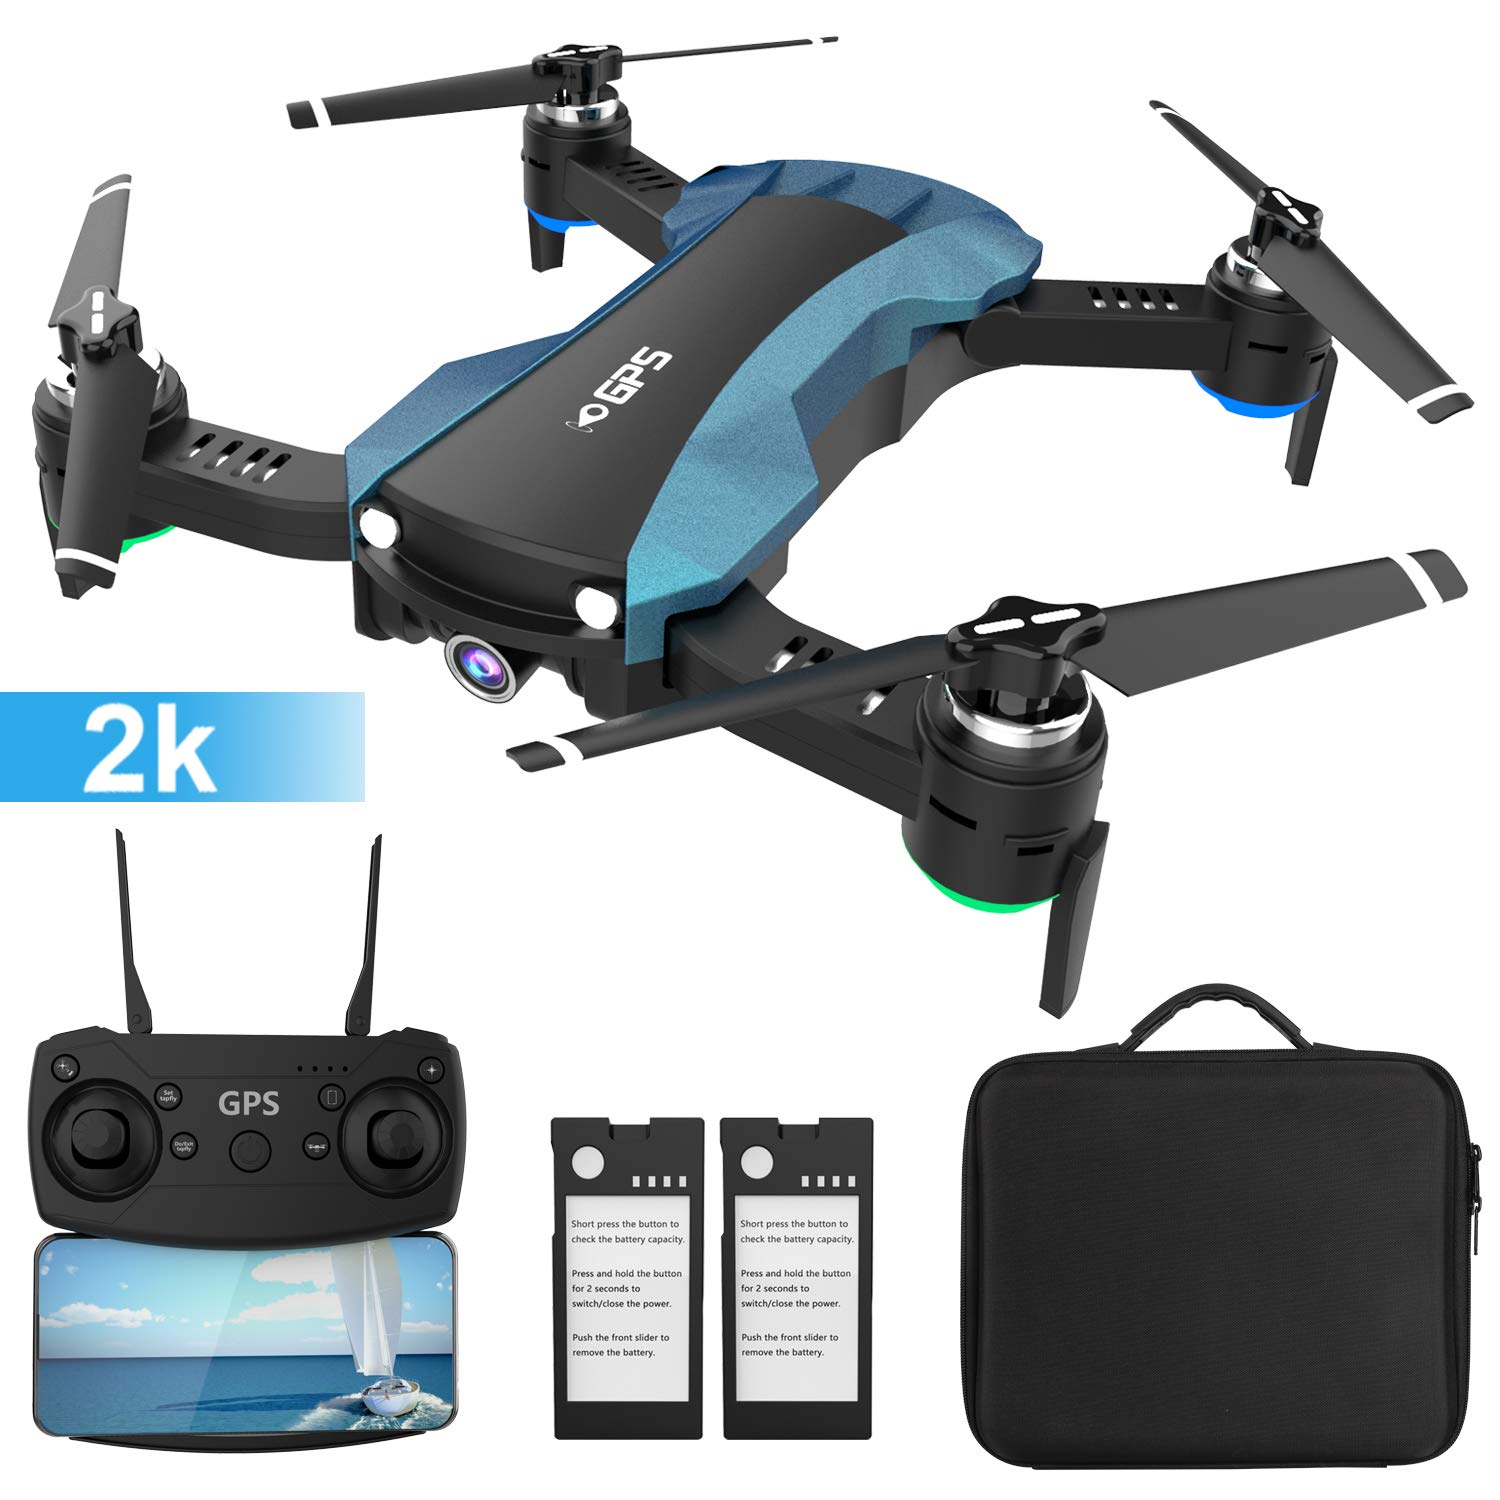 HUKKKYVIT Foldable GPS Drone with Camera for Adults 2k 5G WiF HD FPV, Quadcotper with Auto Return Home, Follow Me, Altitude Hold, Tap Fly Functions, Includes 2 Batteries and Carrying Case by HUKKKYVIT